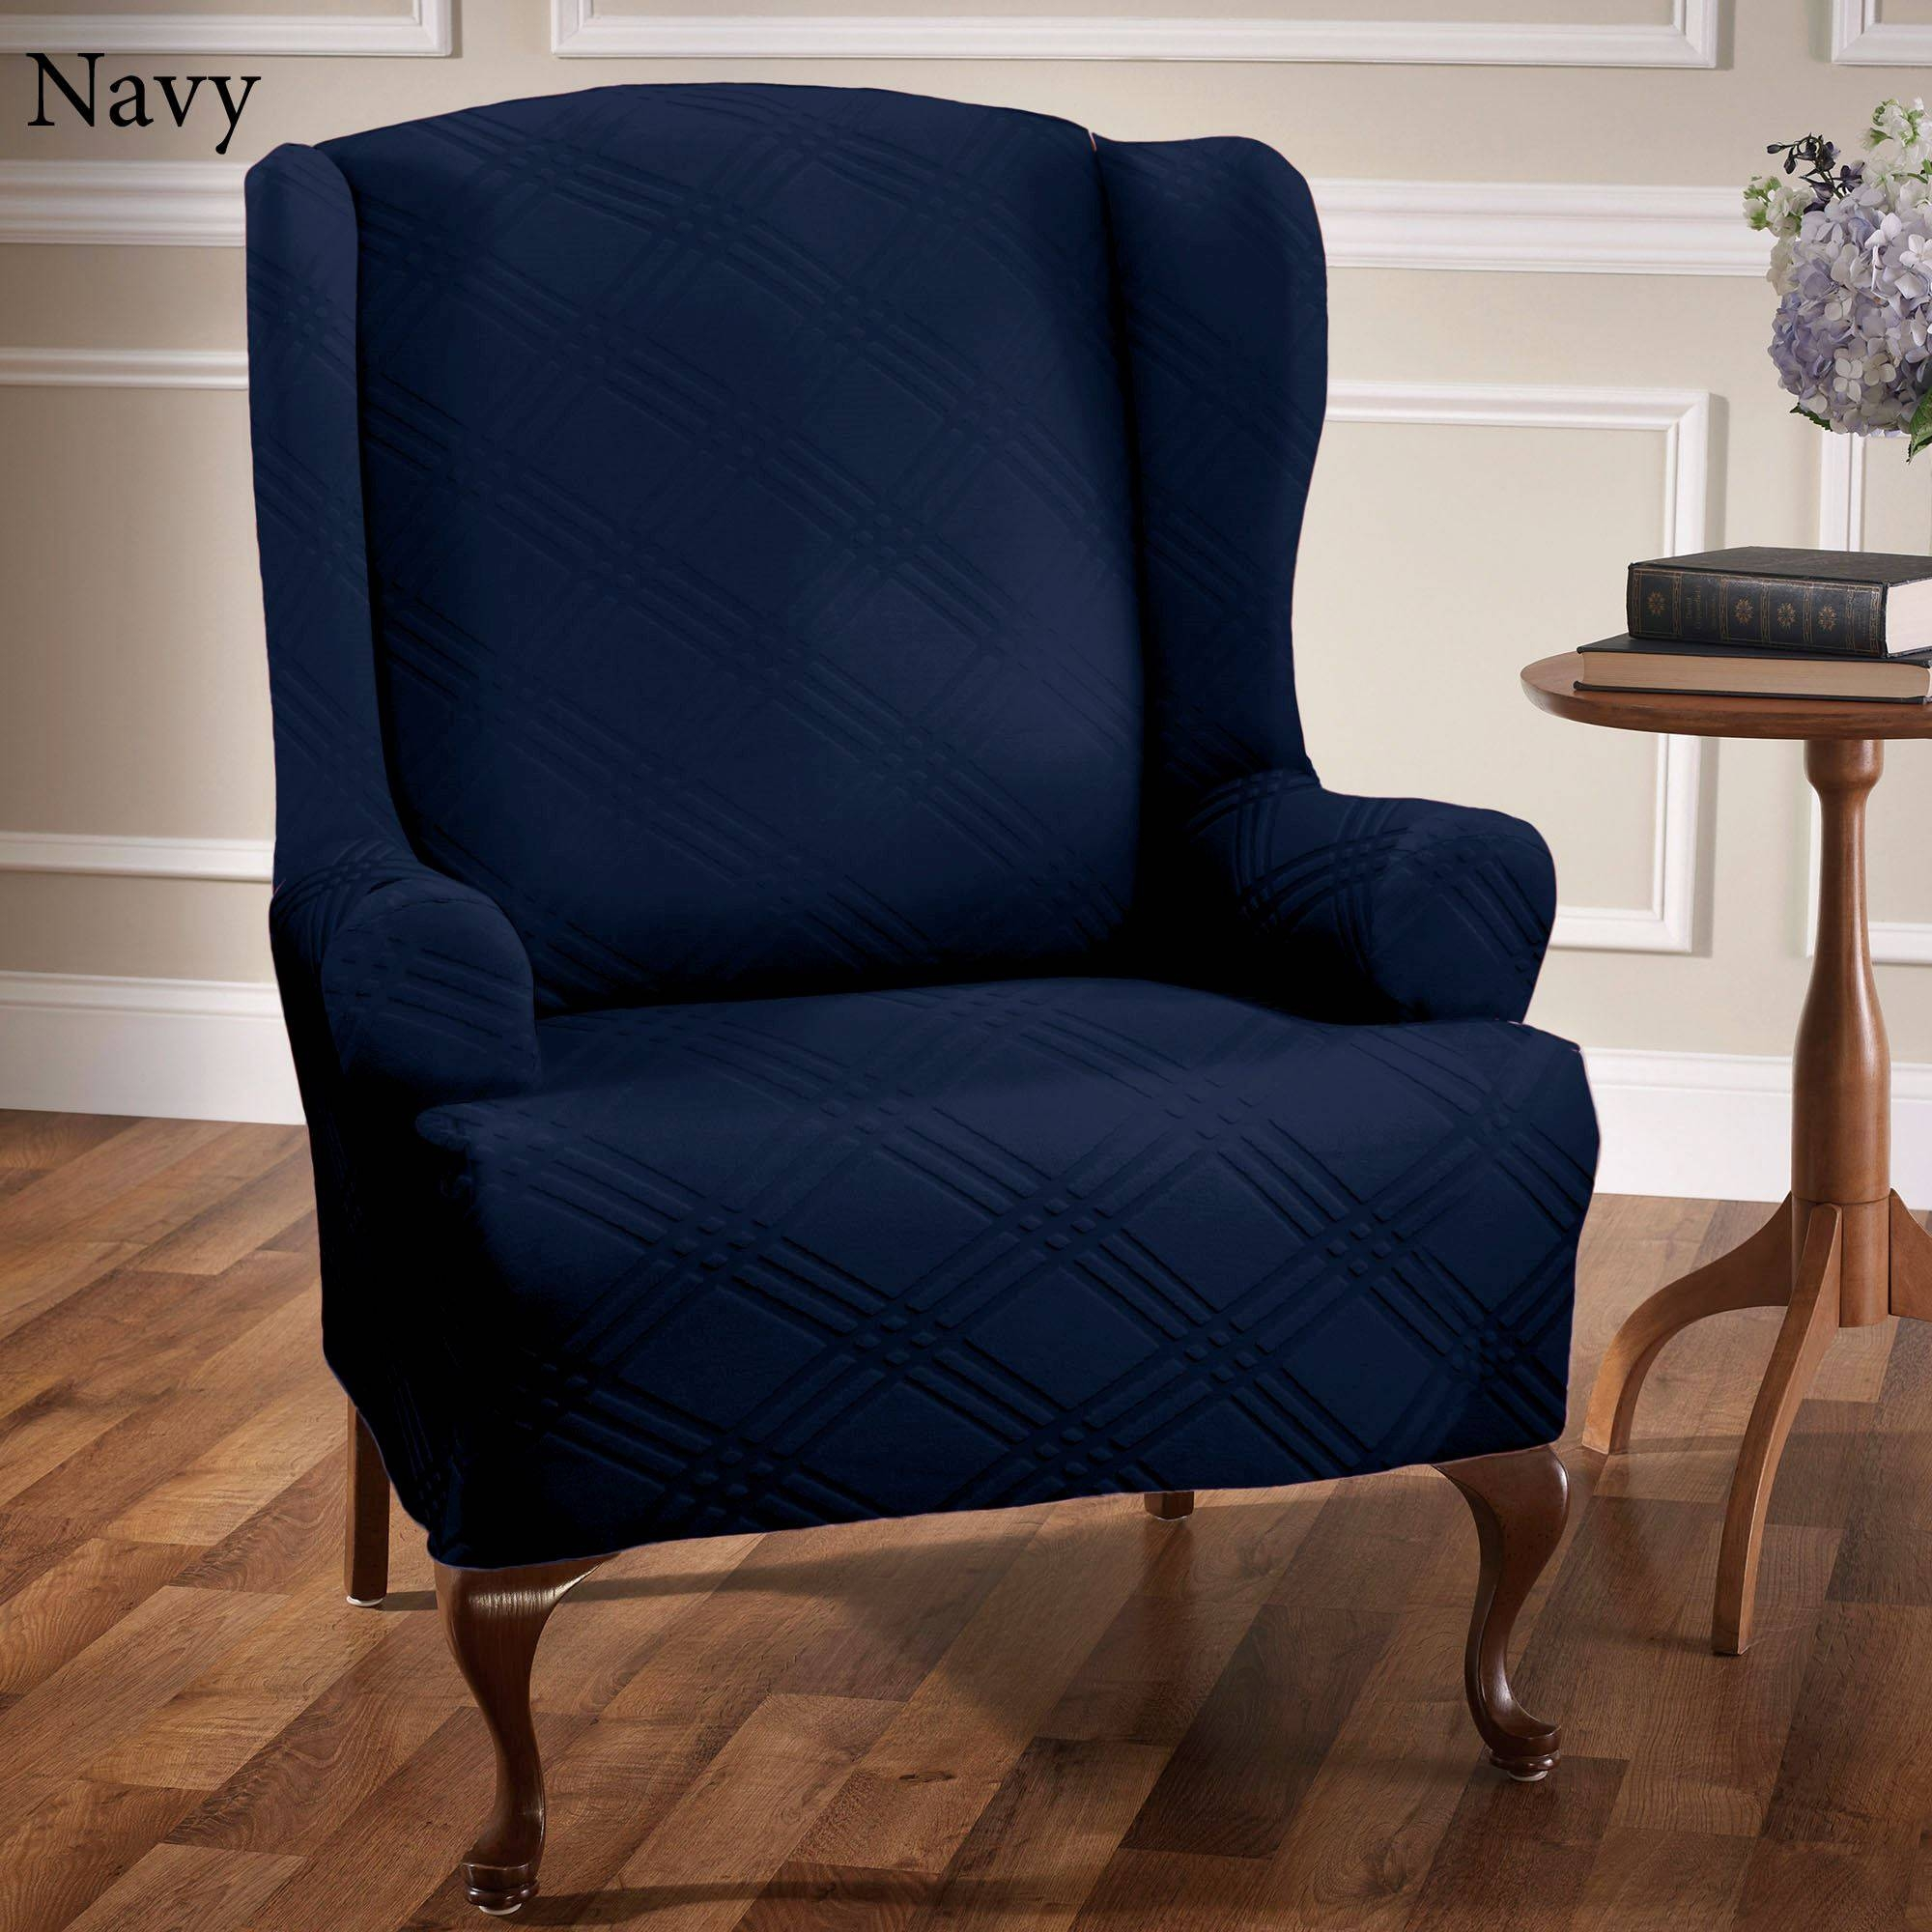 Double Diamond Stretch Wing Chair Slipcovers regarding Blue Slipcovers (Image 5 of 15)